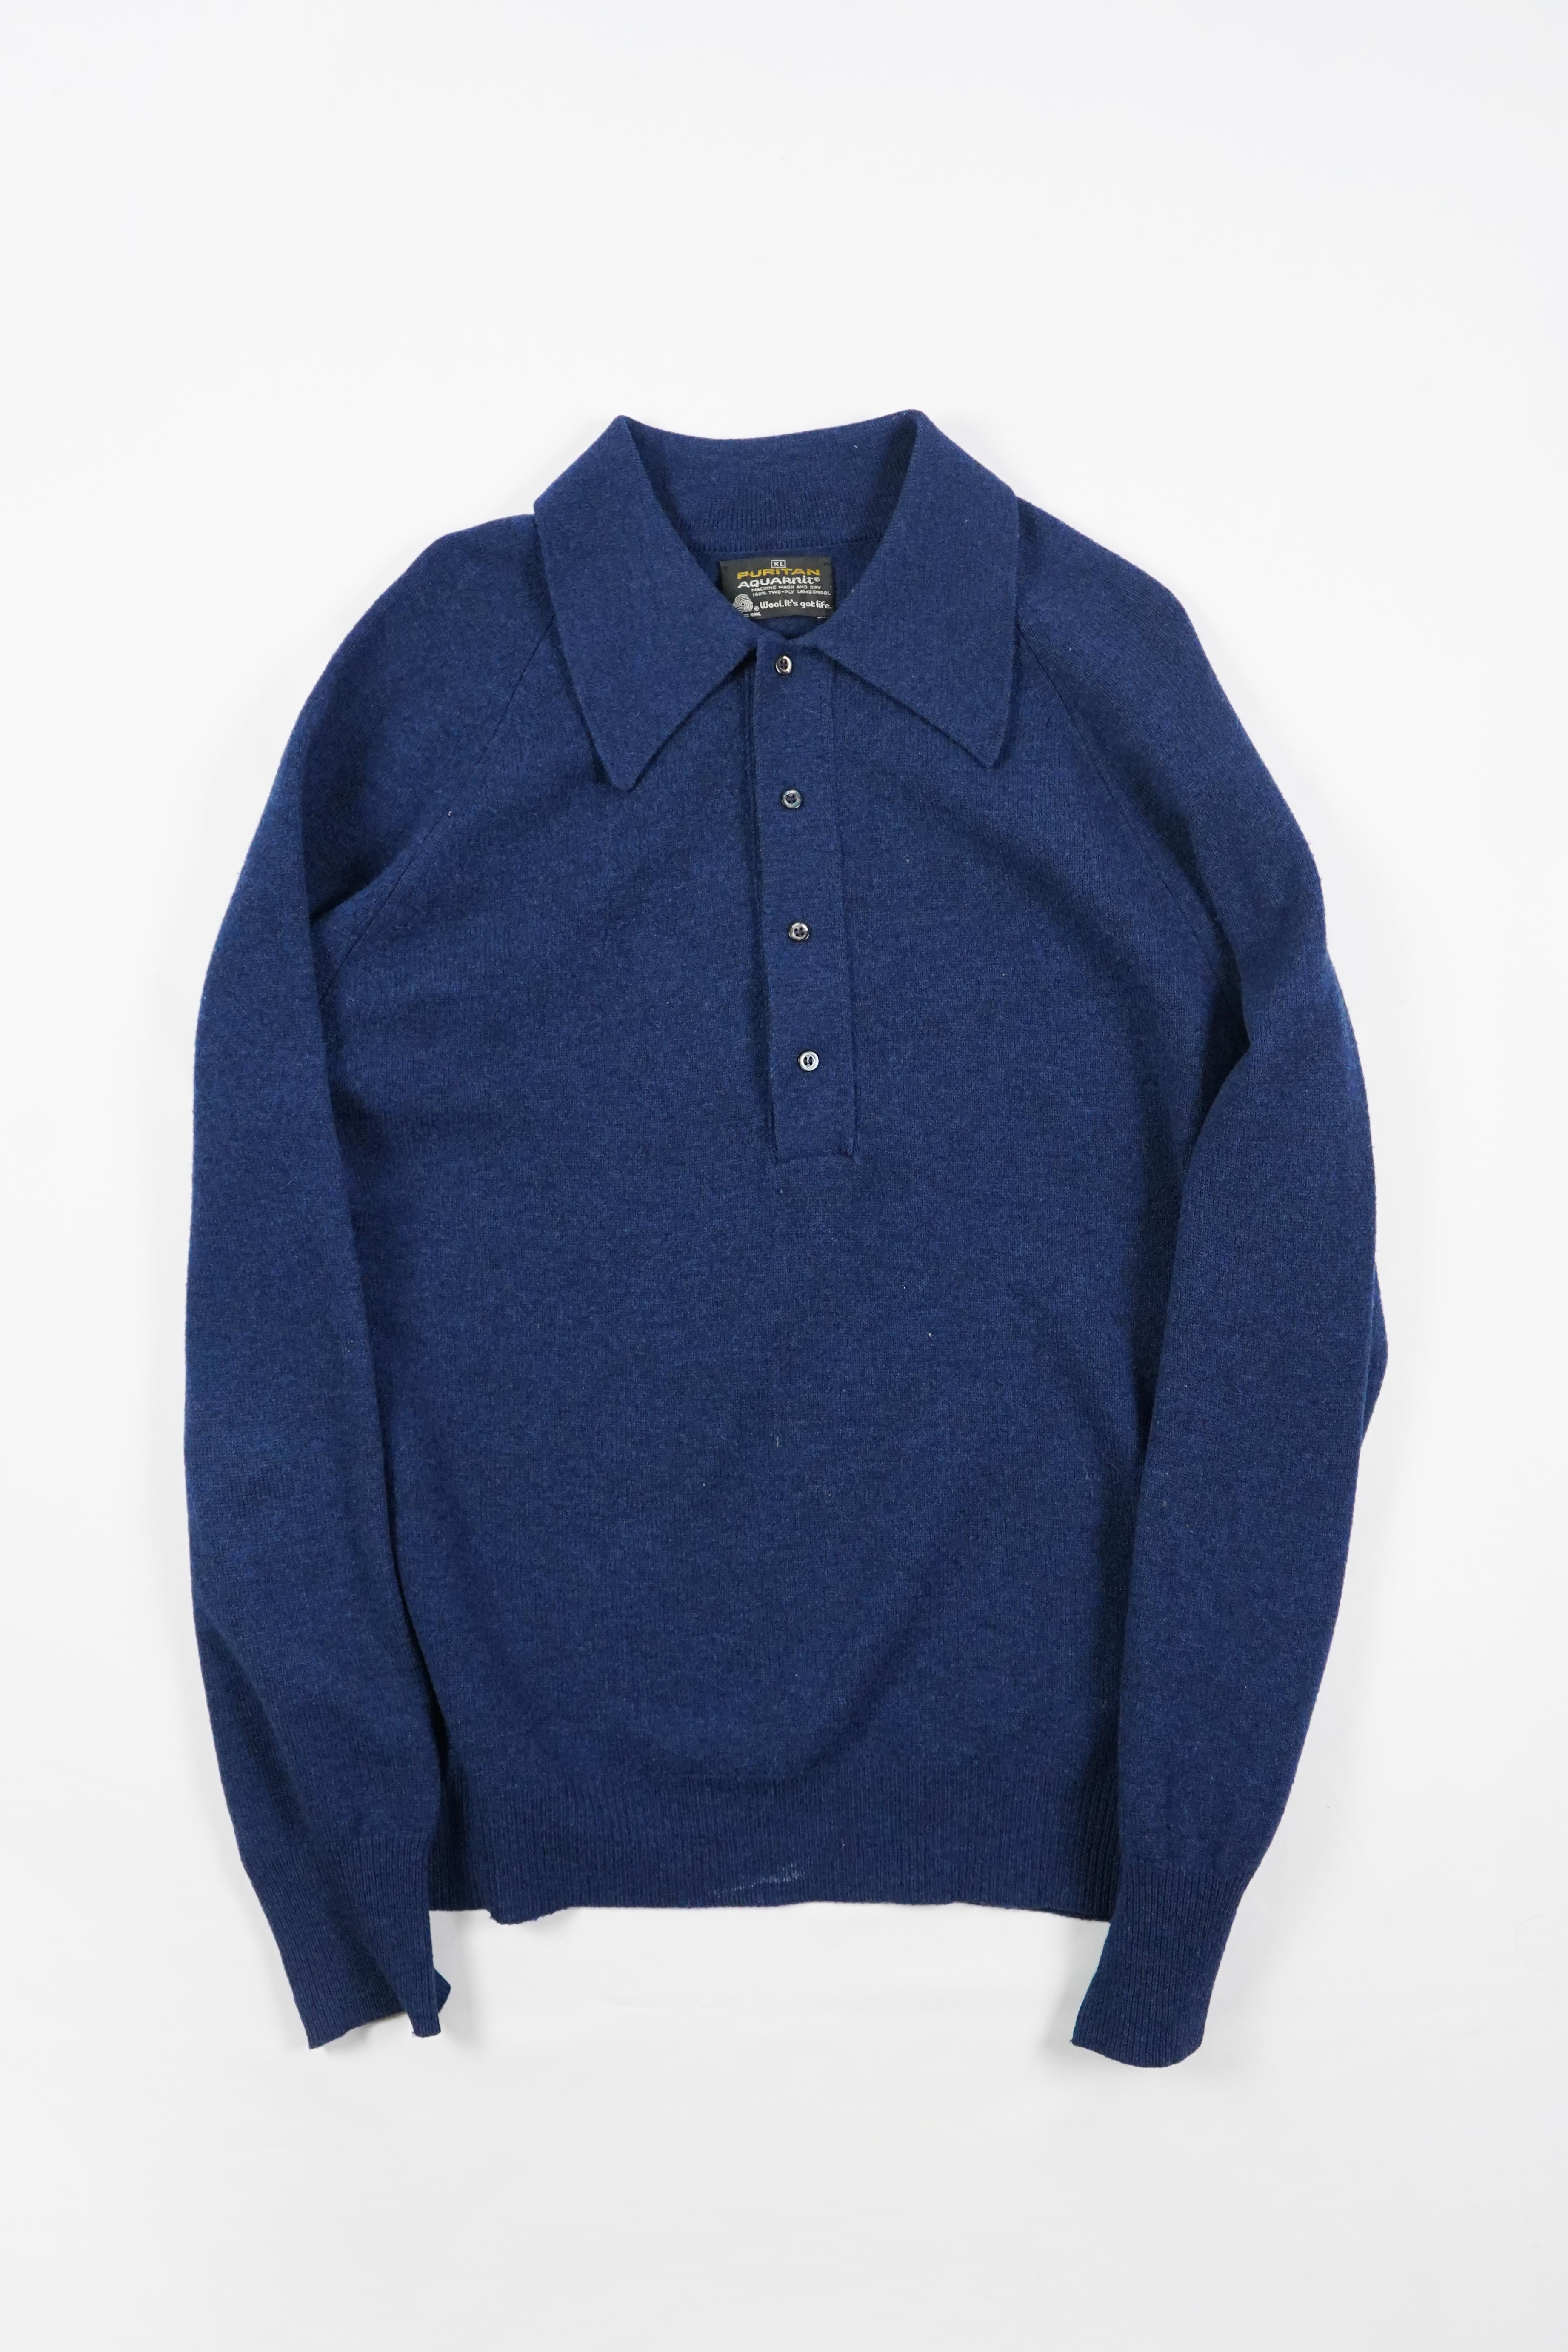 70' KNIT POLO LAMBSWOOL